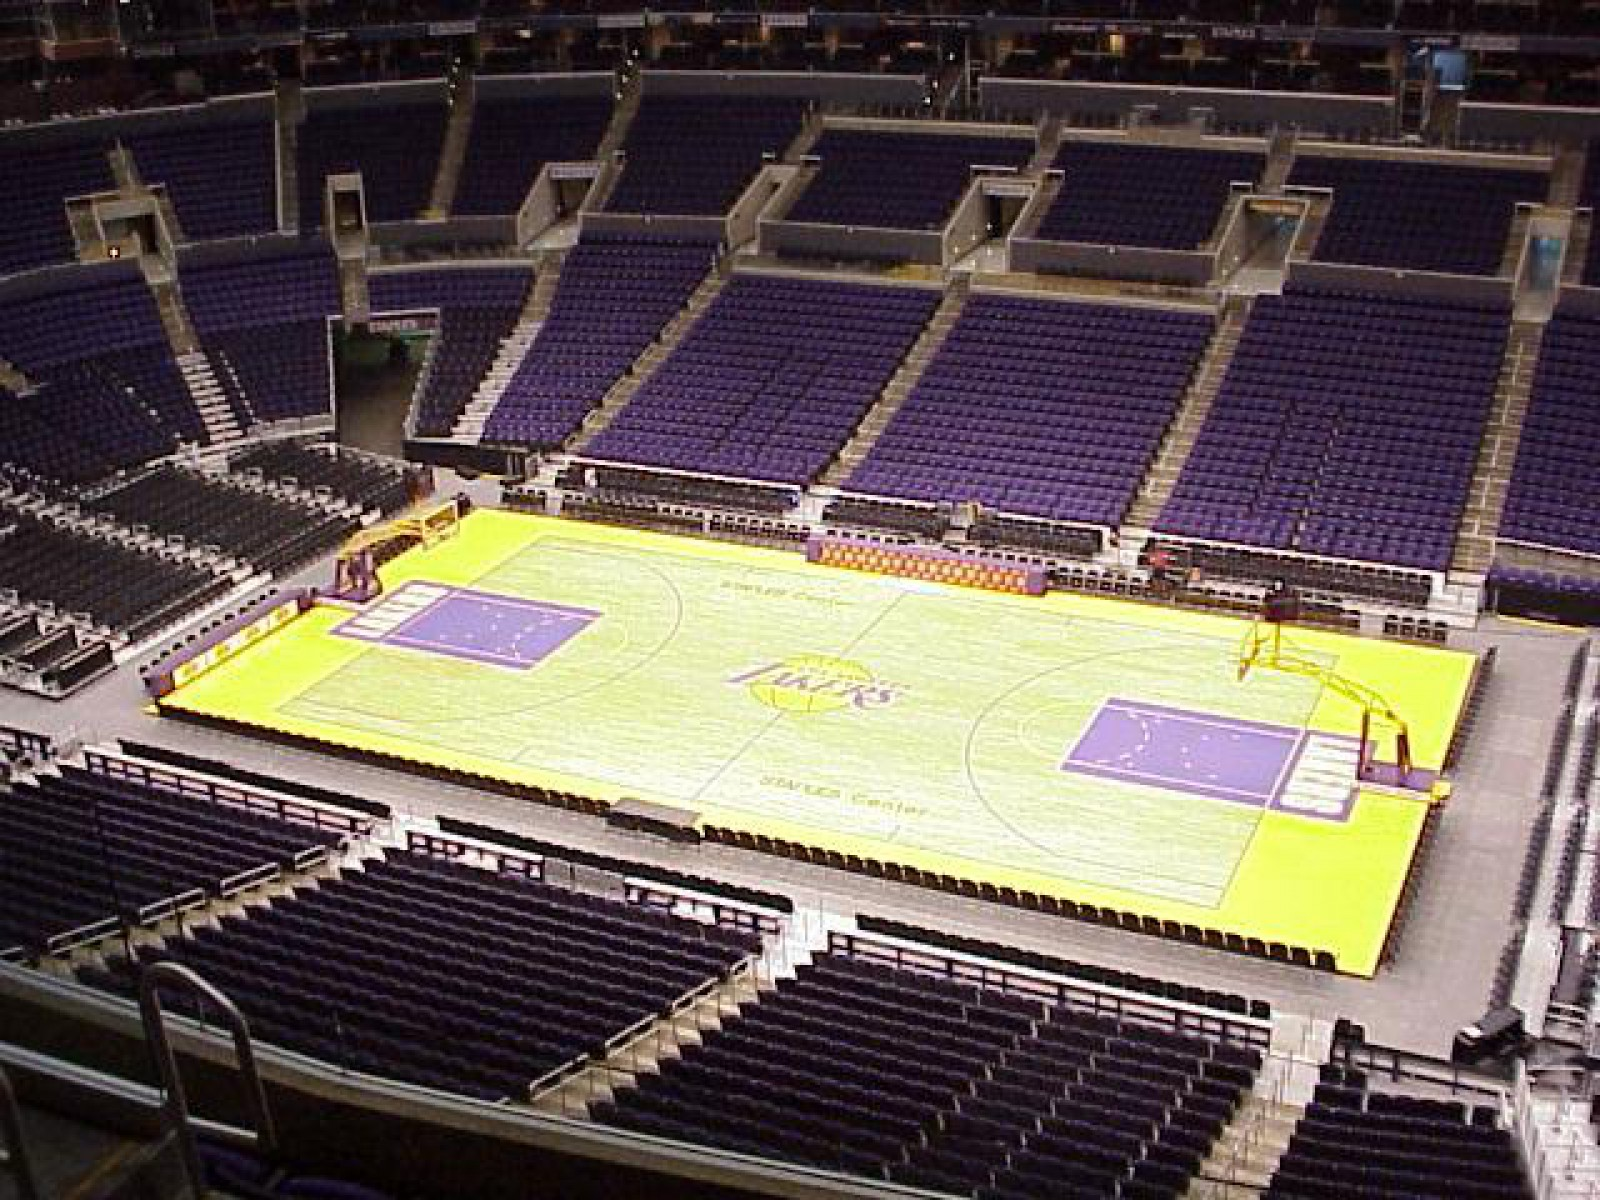 Staples Center, Los Angeles, CA, United States